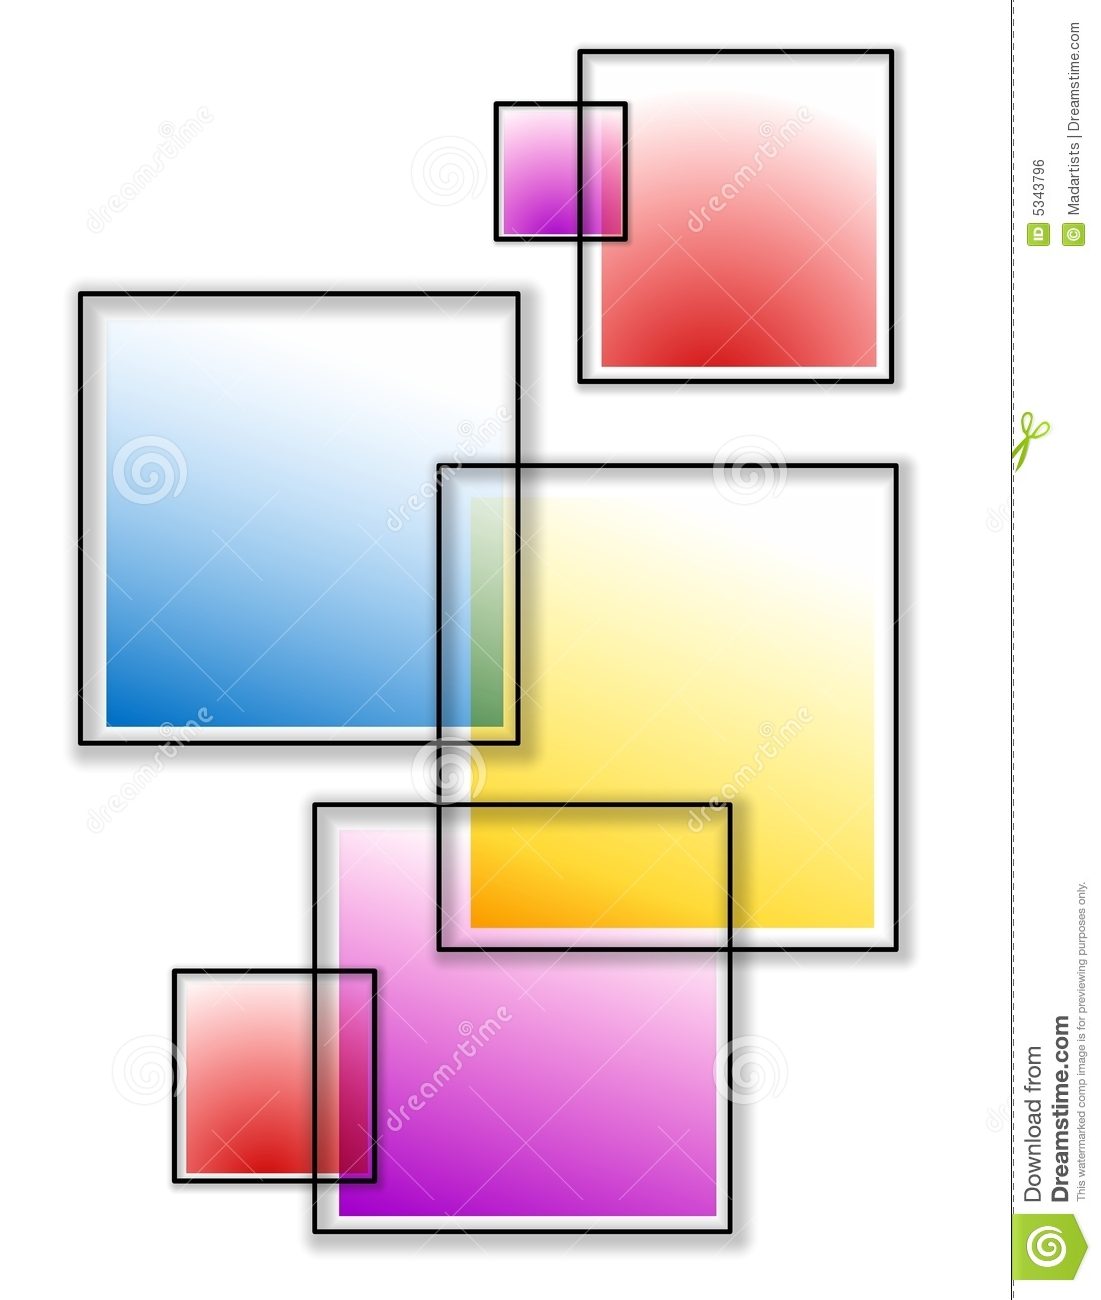 Overlapping Opaque Squares Royalty Free Stock Image - Image: 5343796